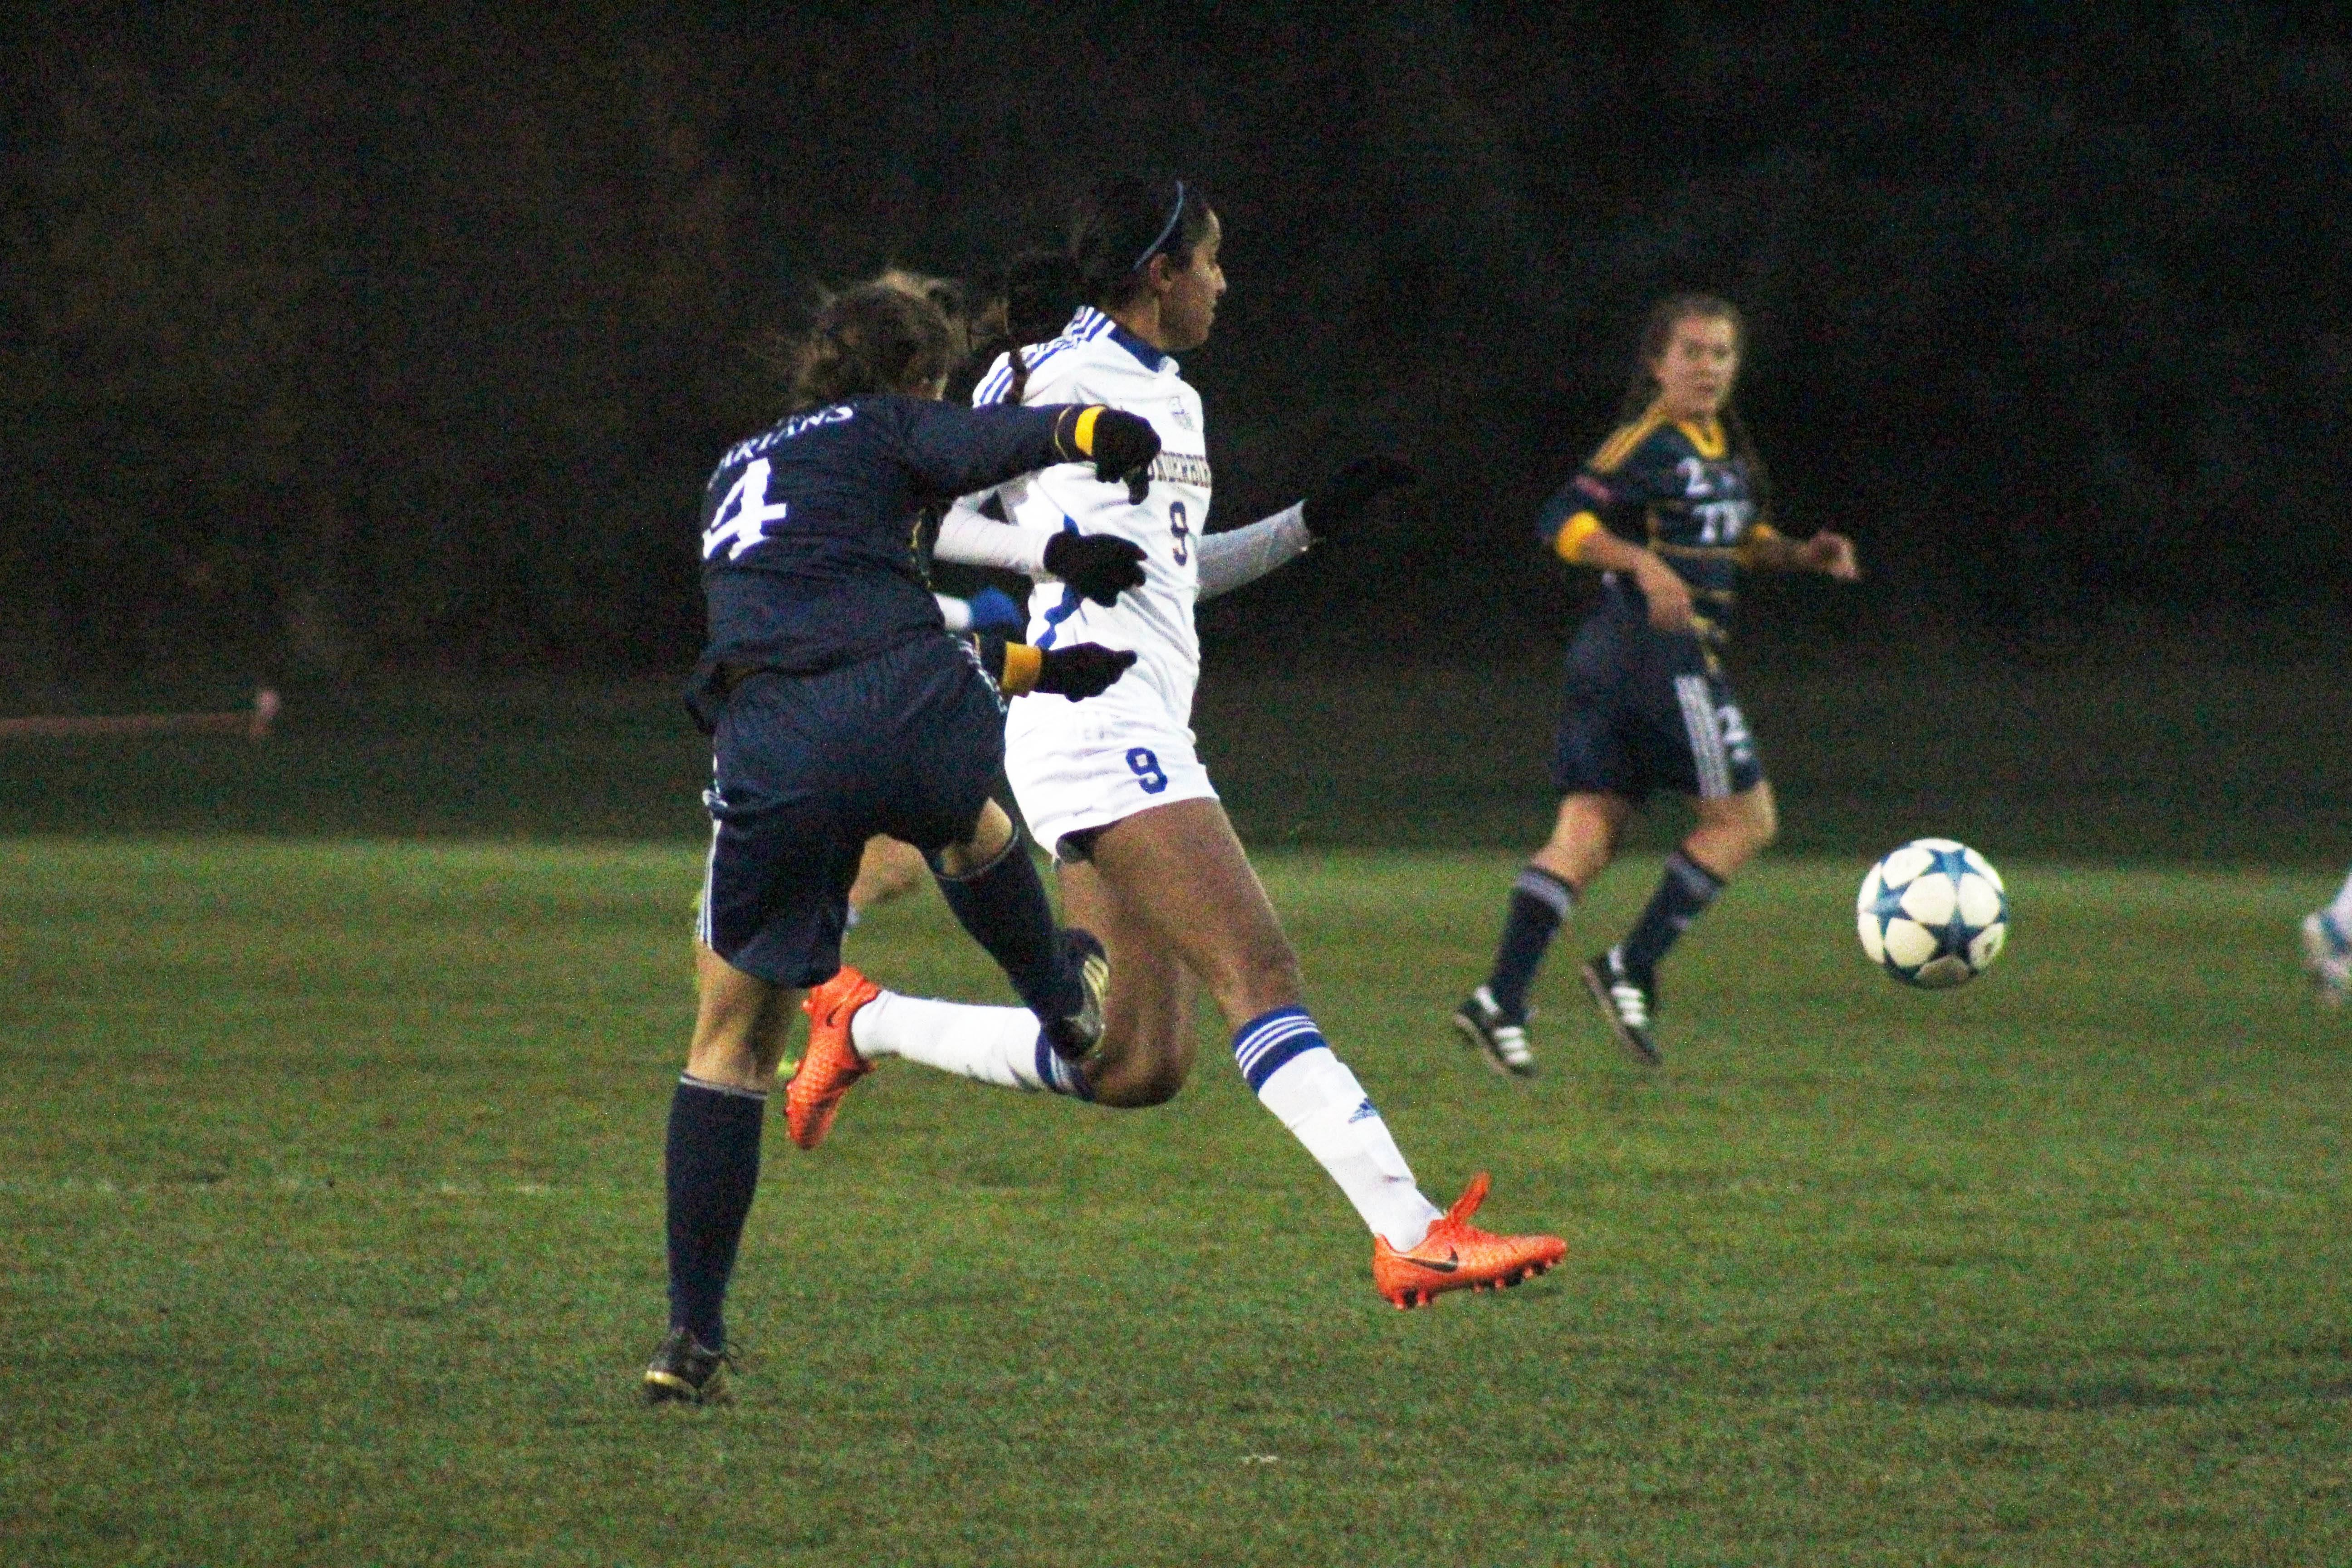 Spartans defender Elizabeth Hicks plays the ball past UBC striker Jasmin Dhanda.